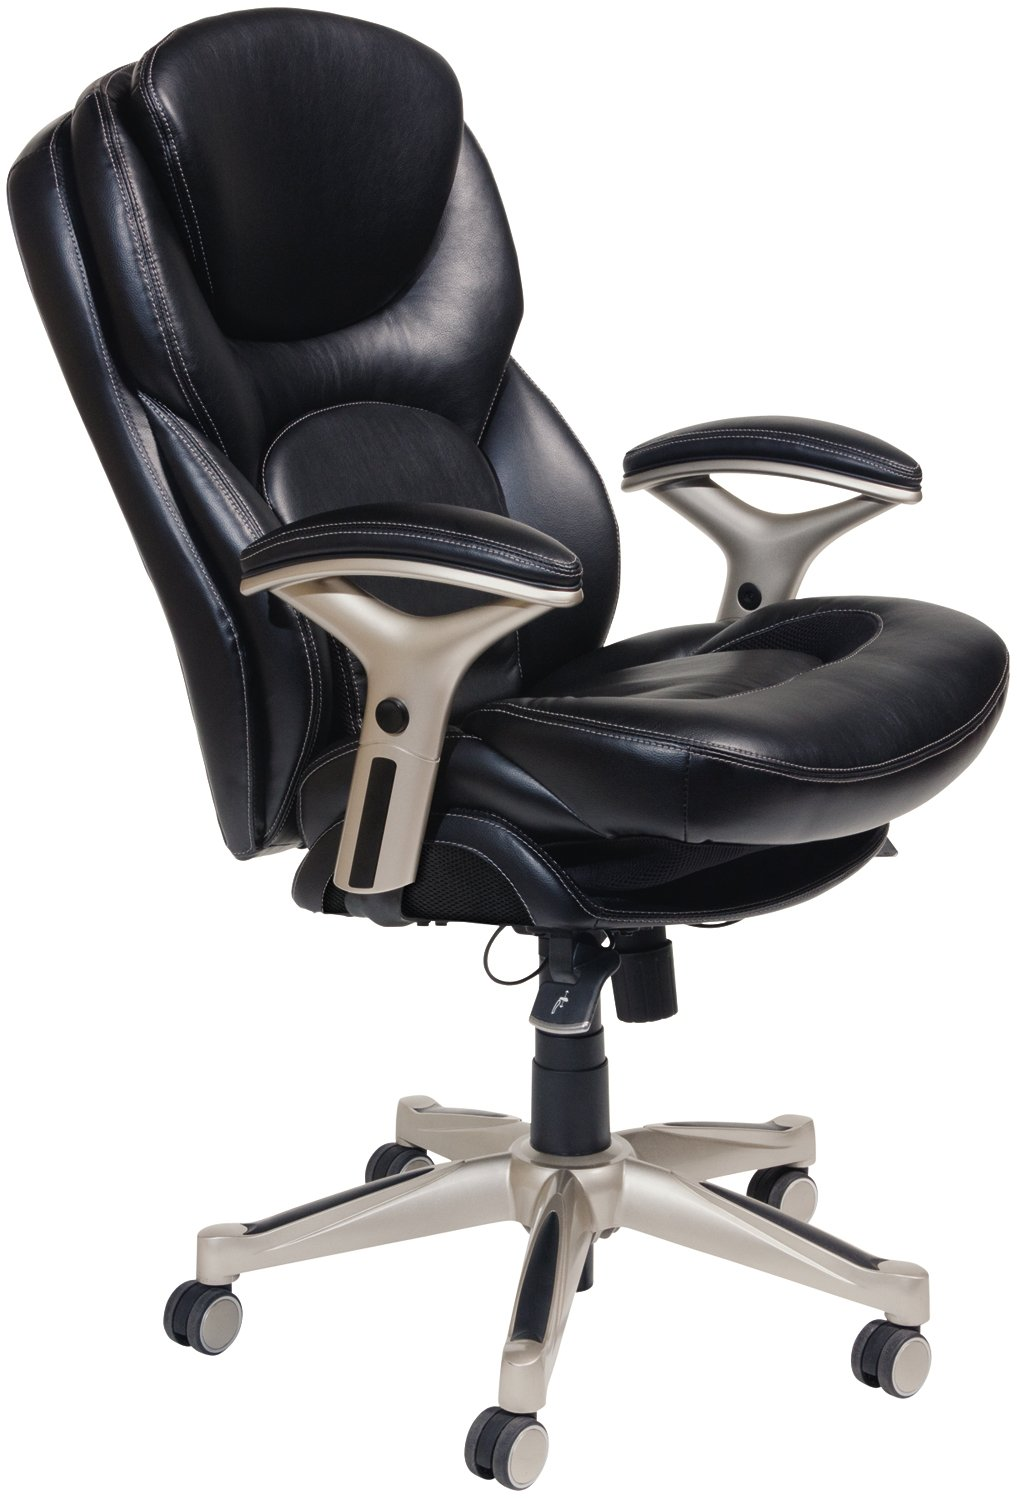 office recliner chairs. Amazon.com: Serta Works Ergonomic Executive Office Chair With Back In Motion Technology, Black Bonded Leather: Kitchen \u0026 Dining Recliner Chairs